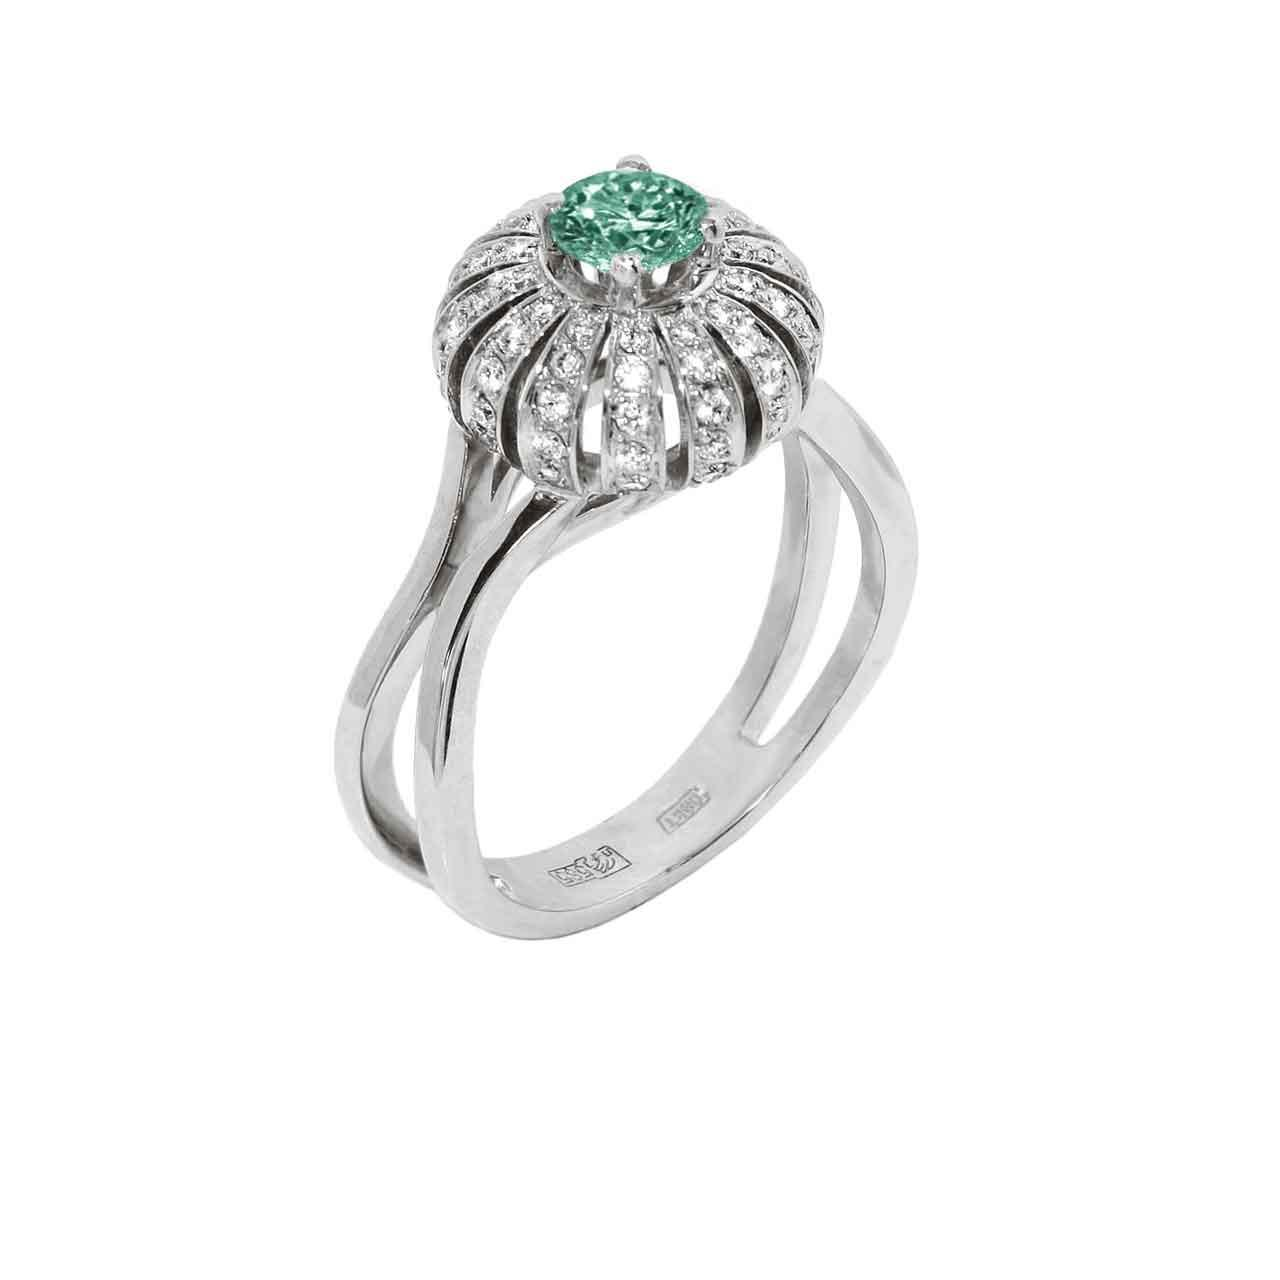 Certified emerald ring 1